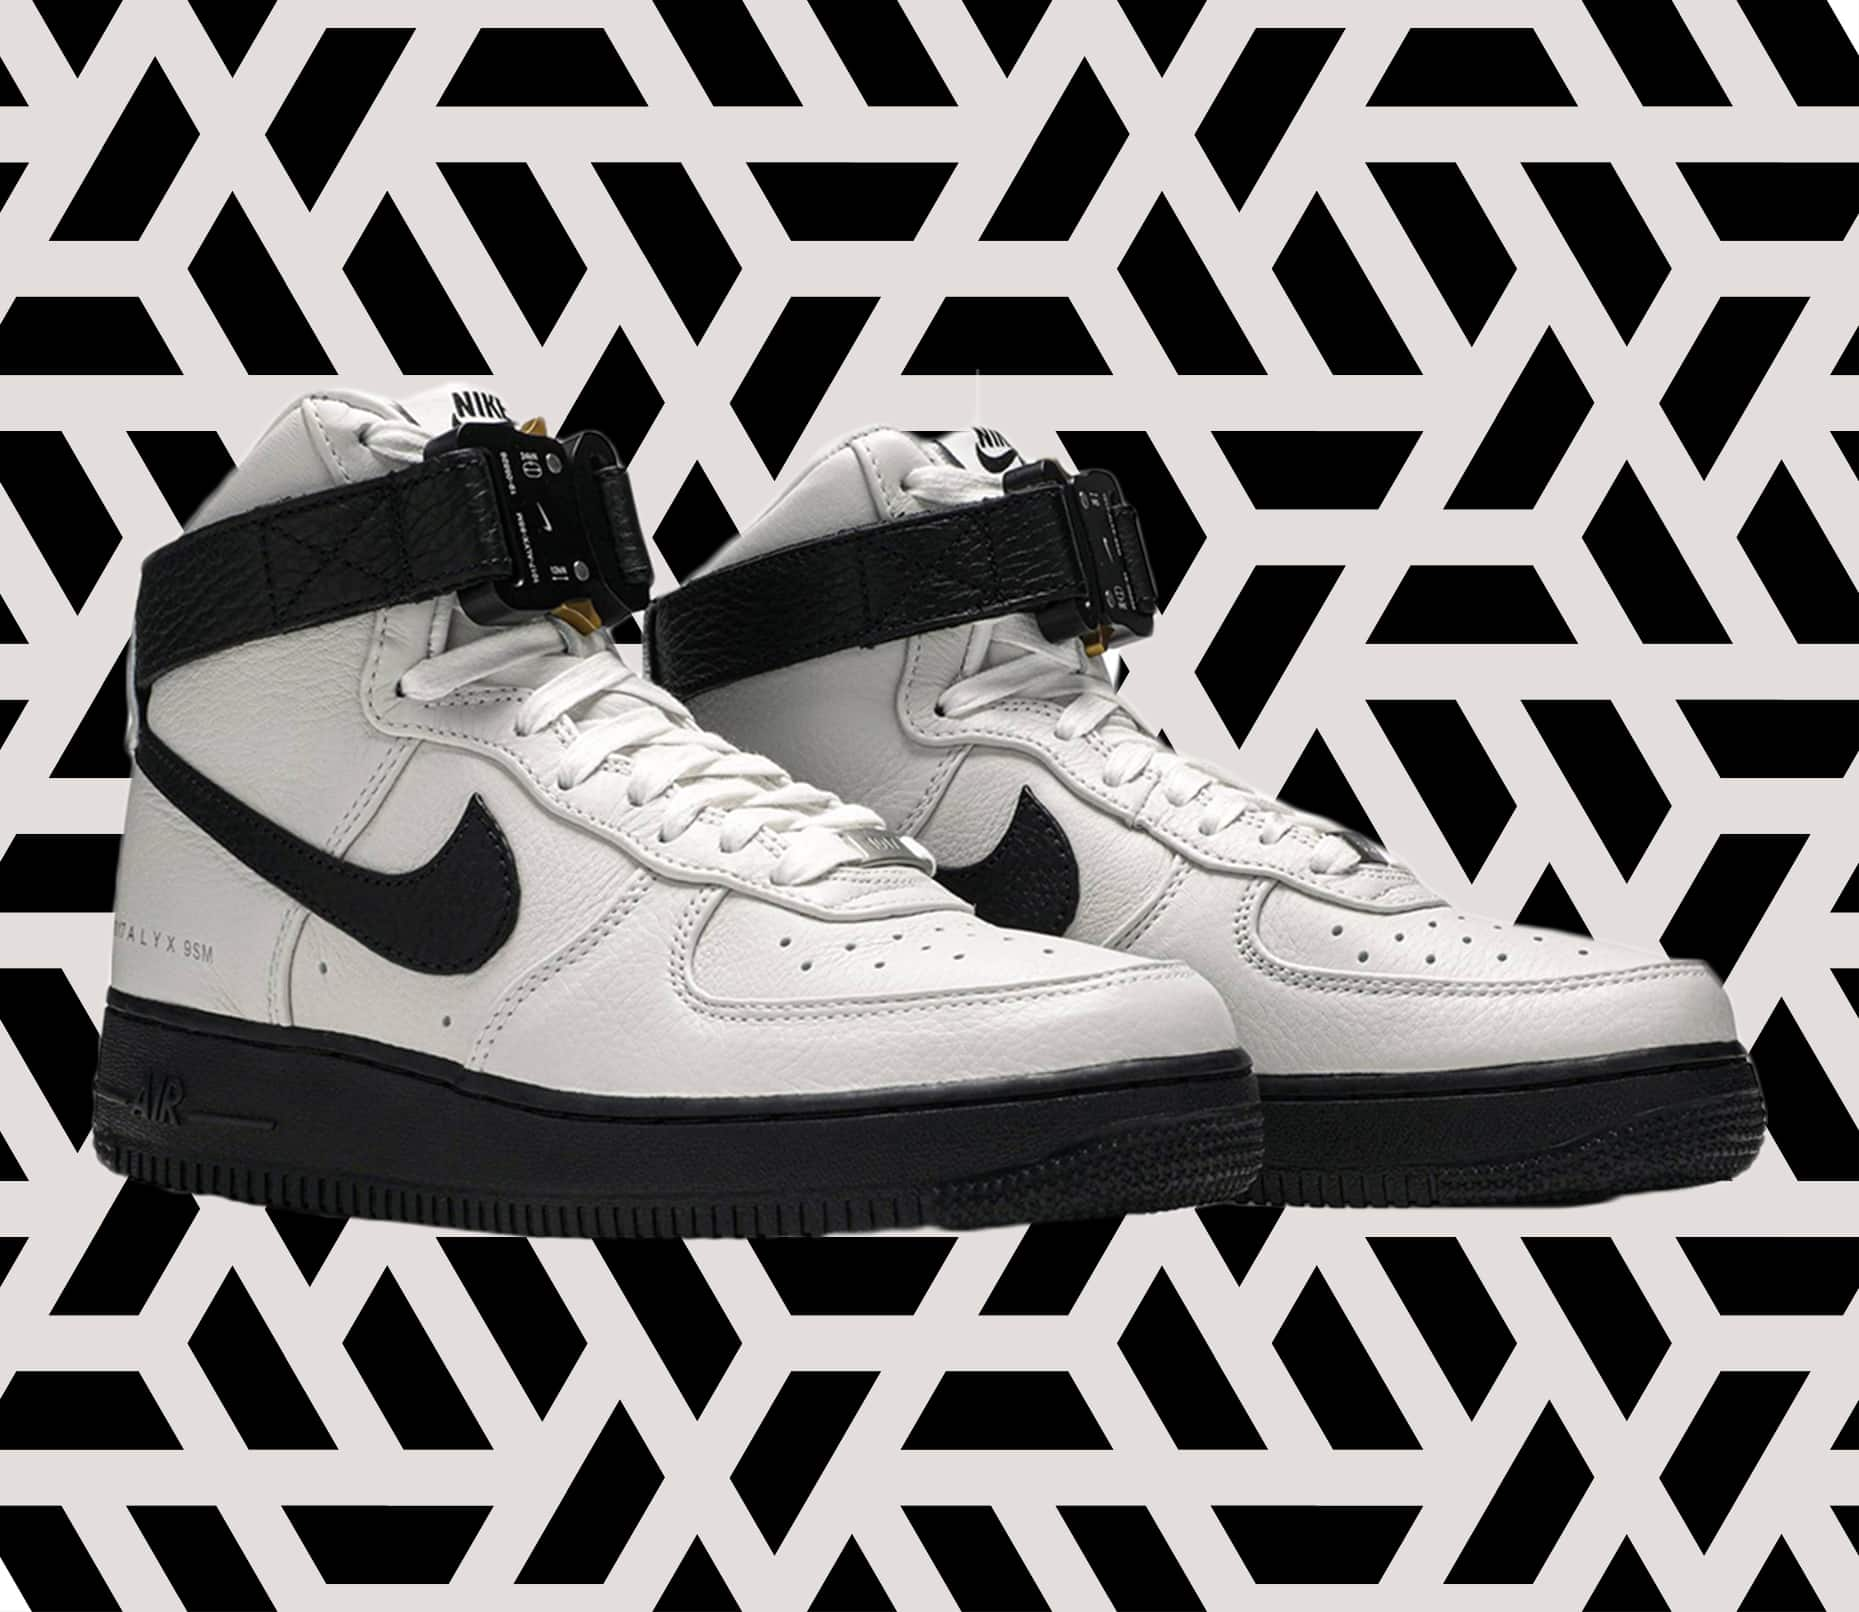 ALYX Air Force 1 White and Black